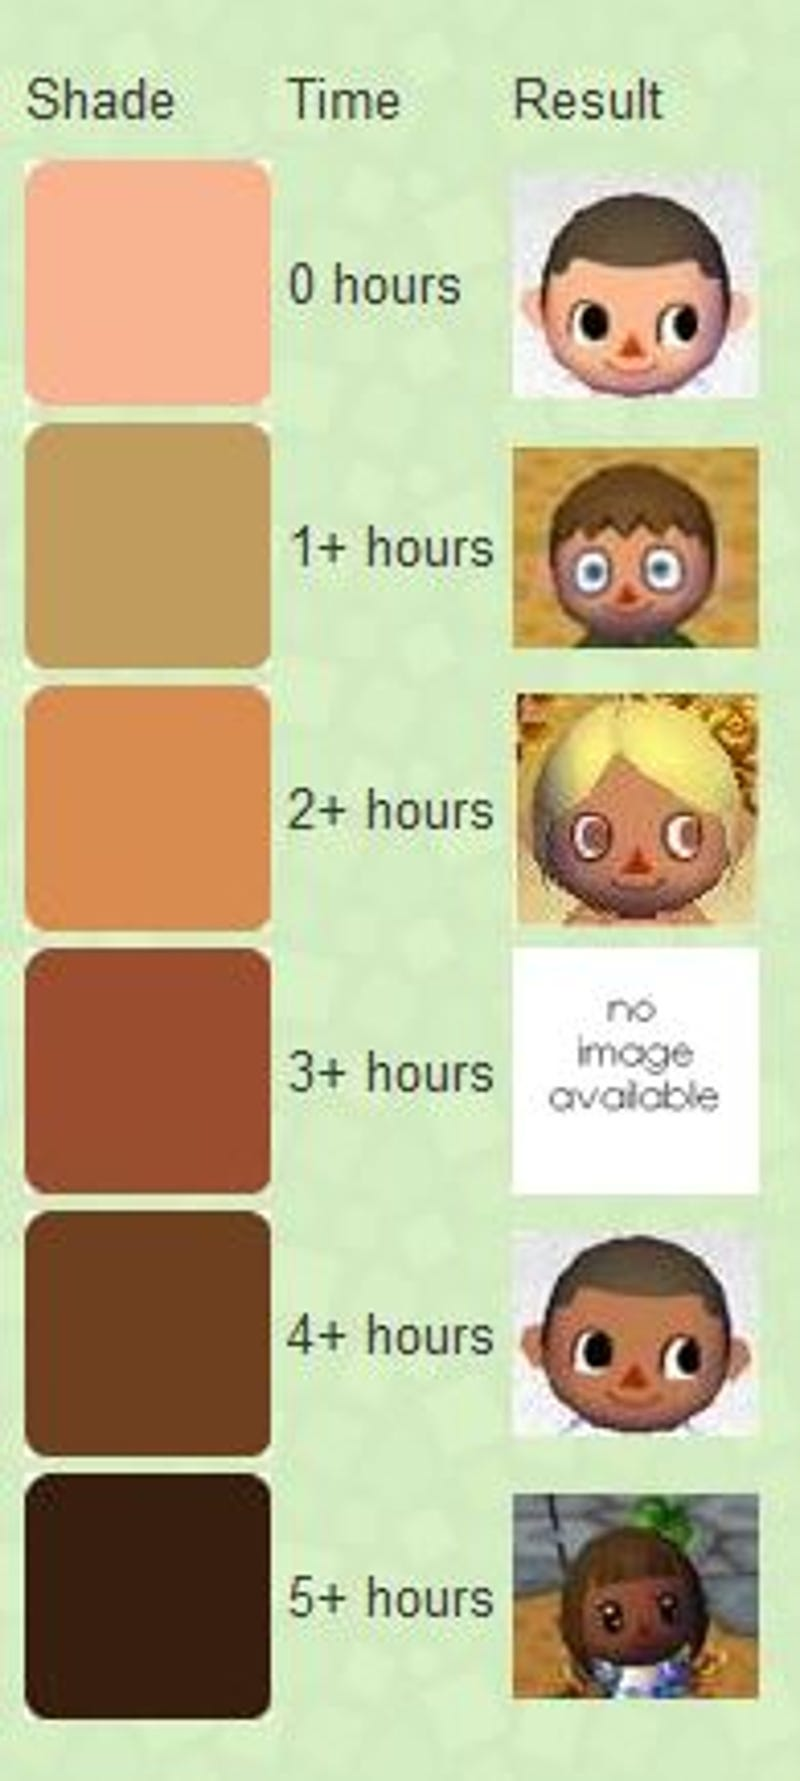 New leaf hair colors best hair color 2017 - Animal crossing wild world hair salon ...